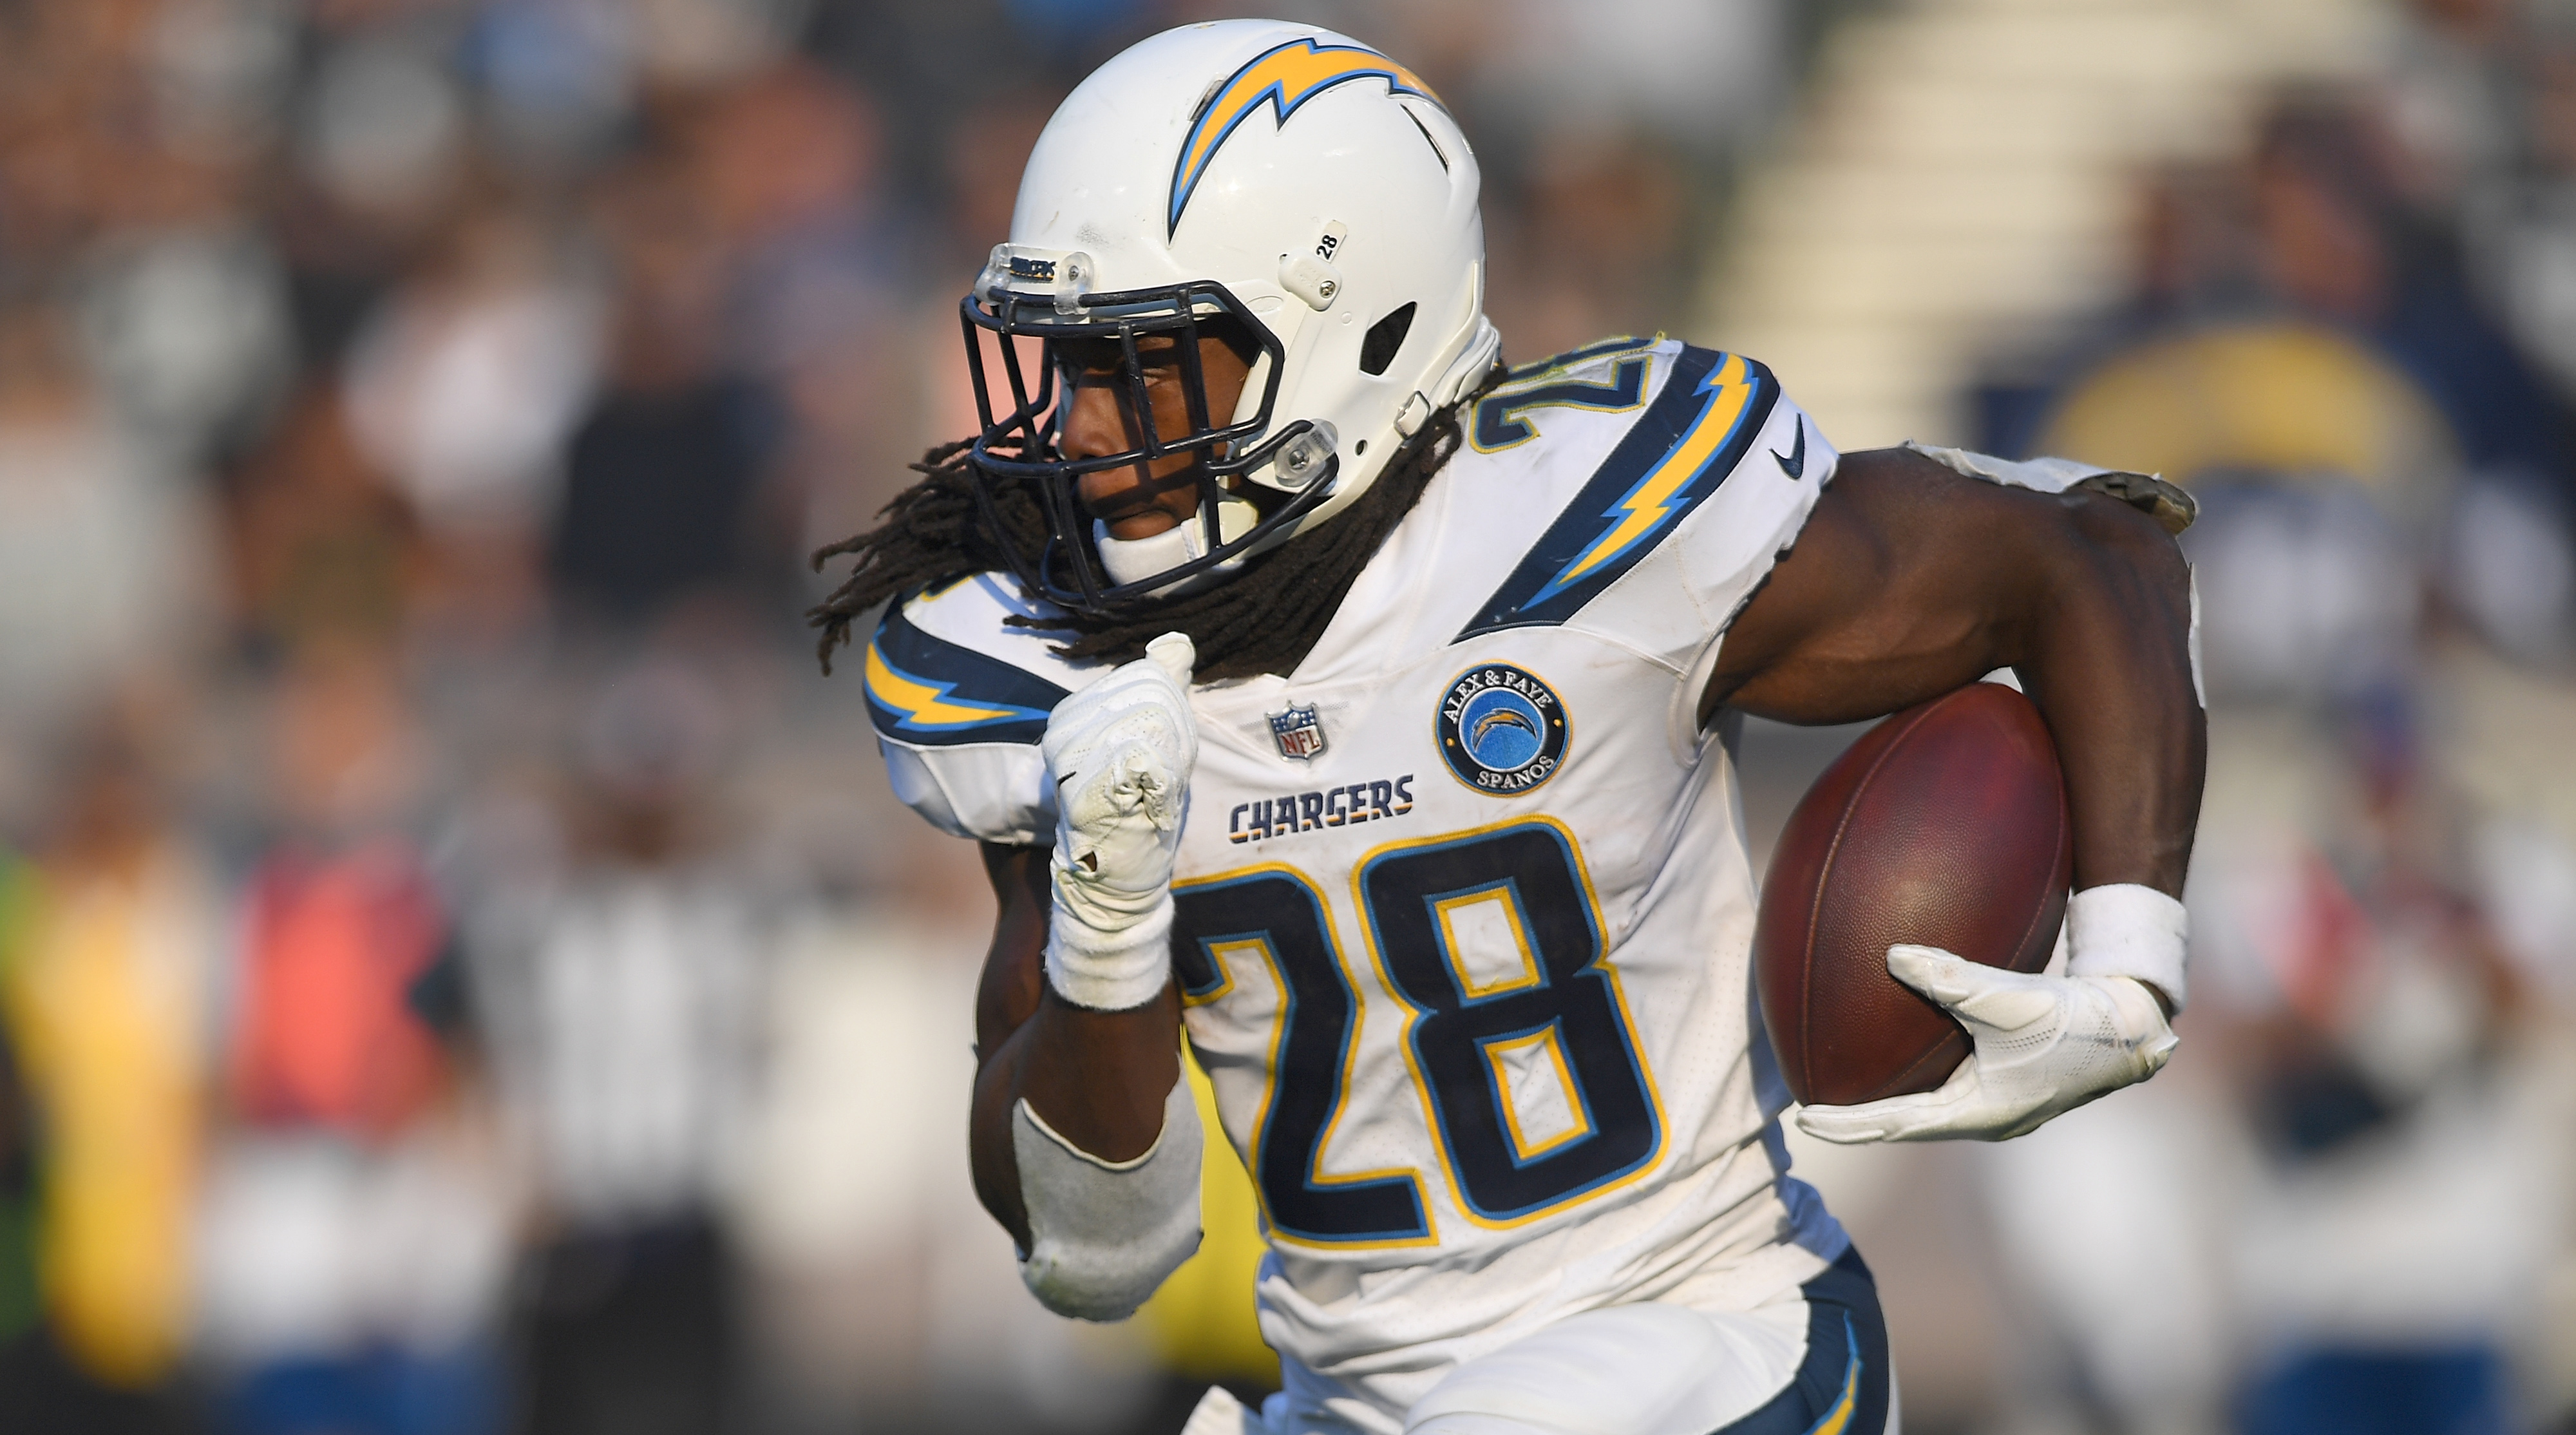 Melvin Gordon, los angeles chargers, wire, NFL